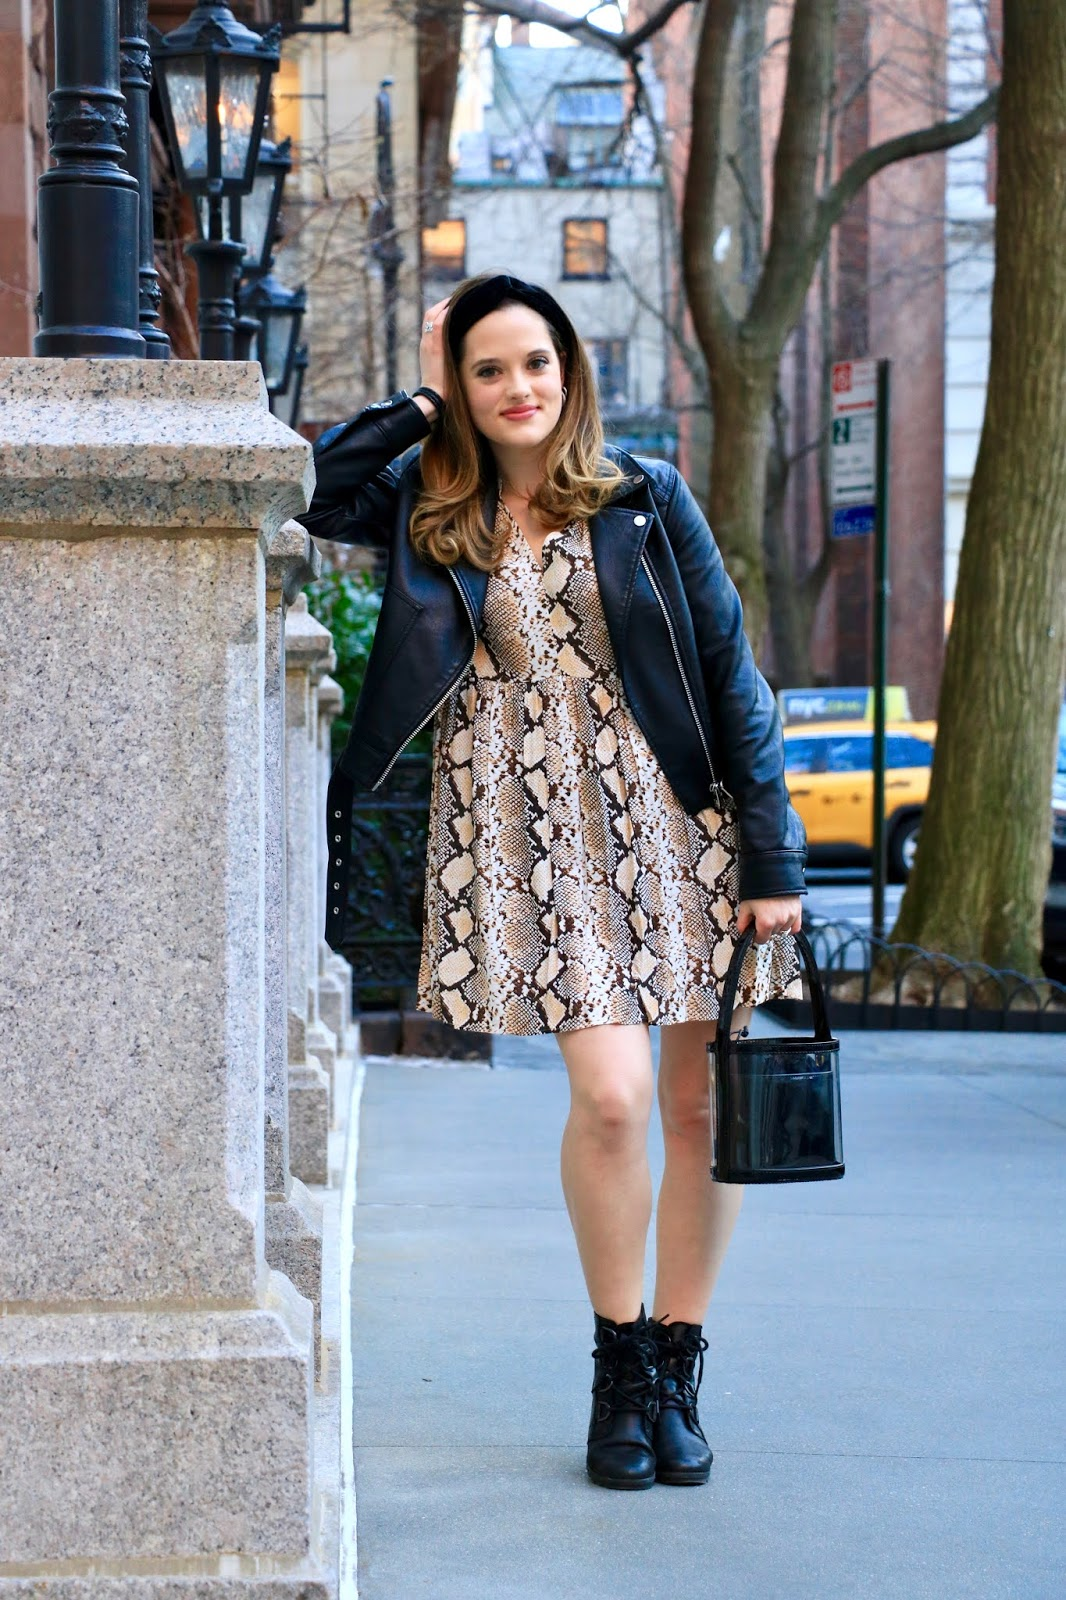 Nyc fashion blogger Kathleen Harper wearing an Anthropologie snakeskin dress with a black leather jacket.